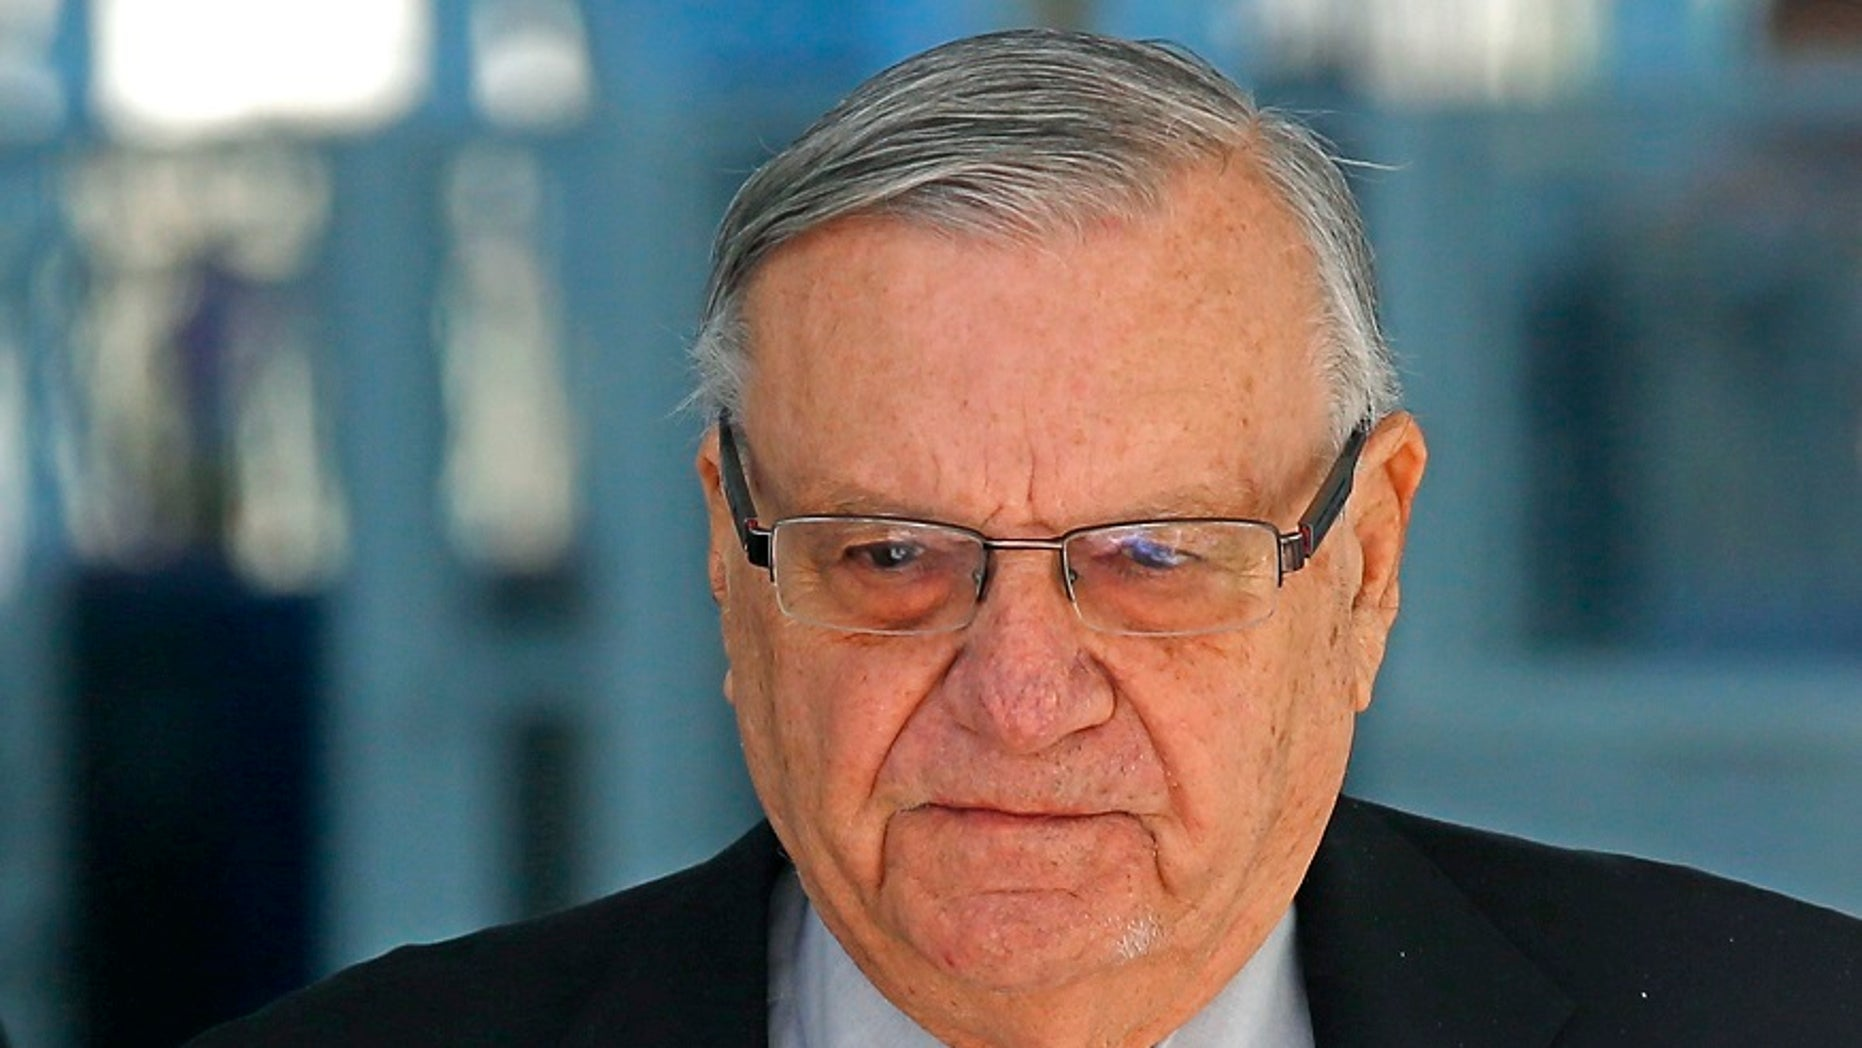 Former Maricopa County Sheriff Joe Arpaio is on trial for reportedly violating a judge's order in a 2011 racial profiling case in Phoenix. His trial is set to begin on Monday, June 26, 2017.